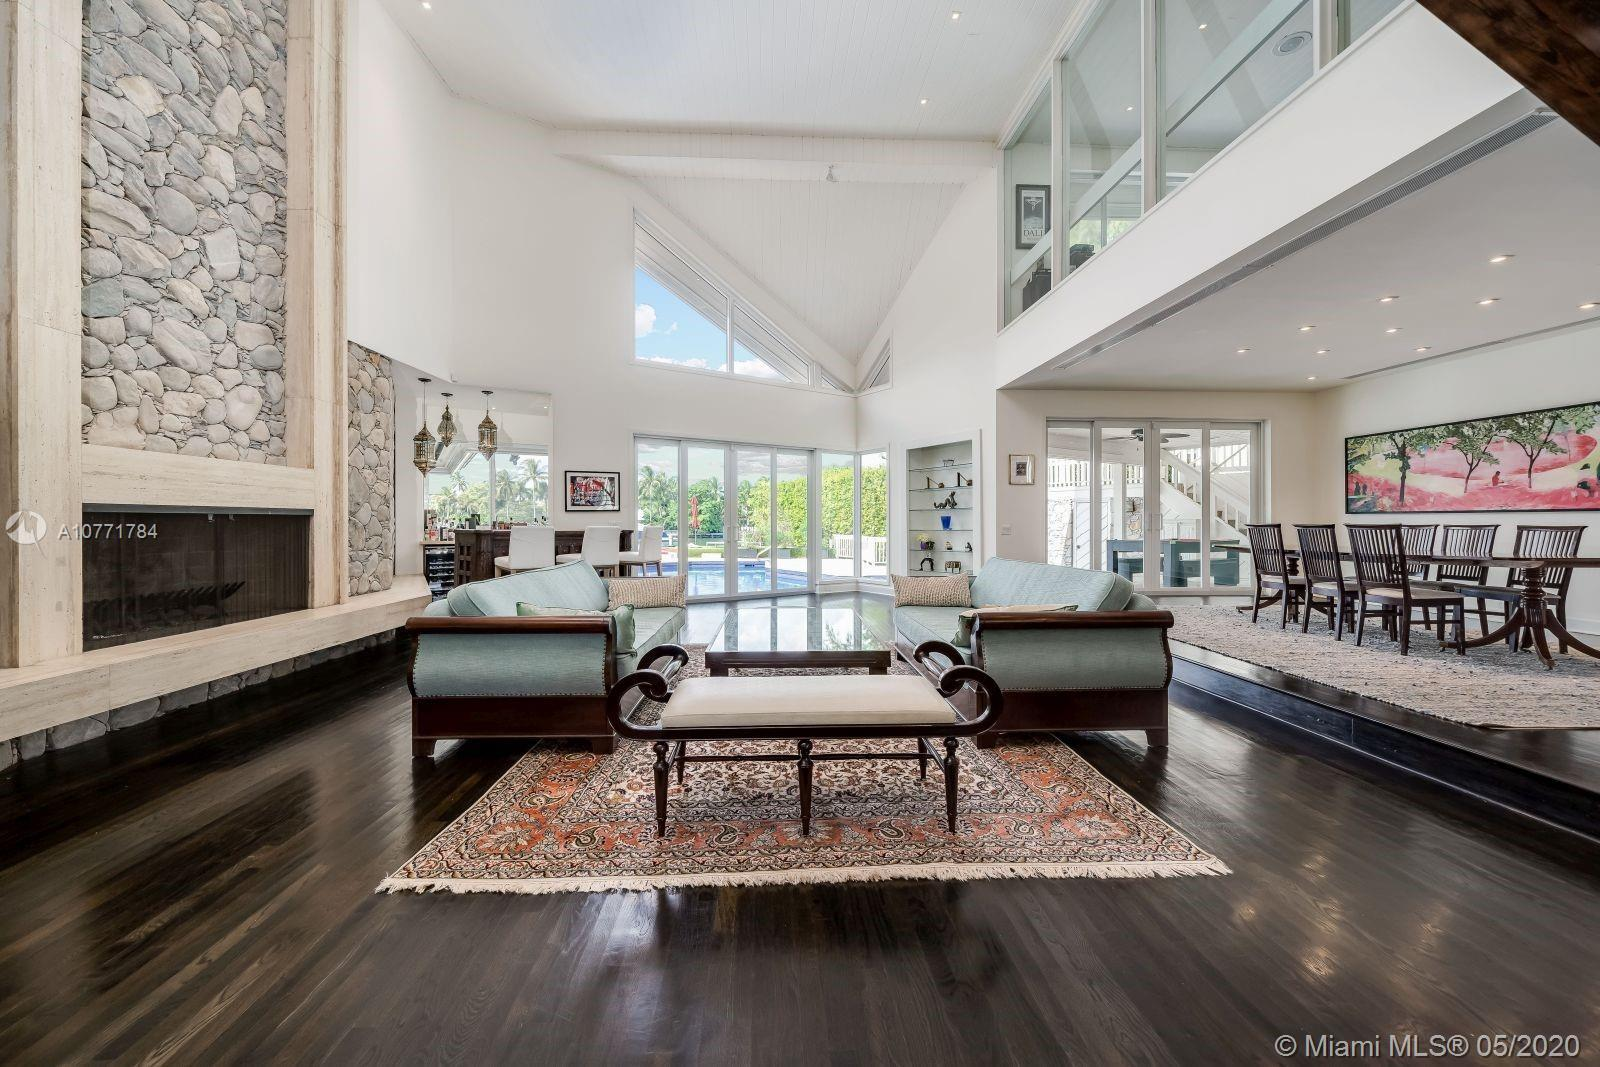 Architecturally important. Designed by Barry Sugarman with his inimitable flair. 25' ceilings, large